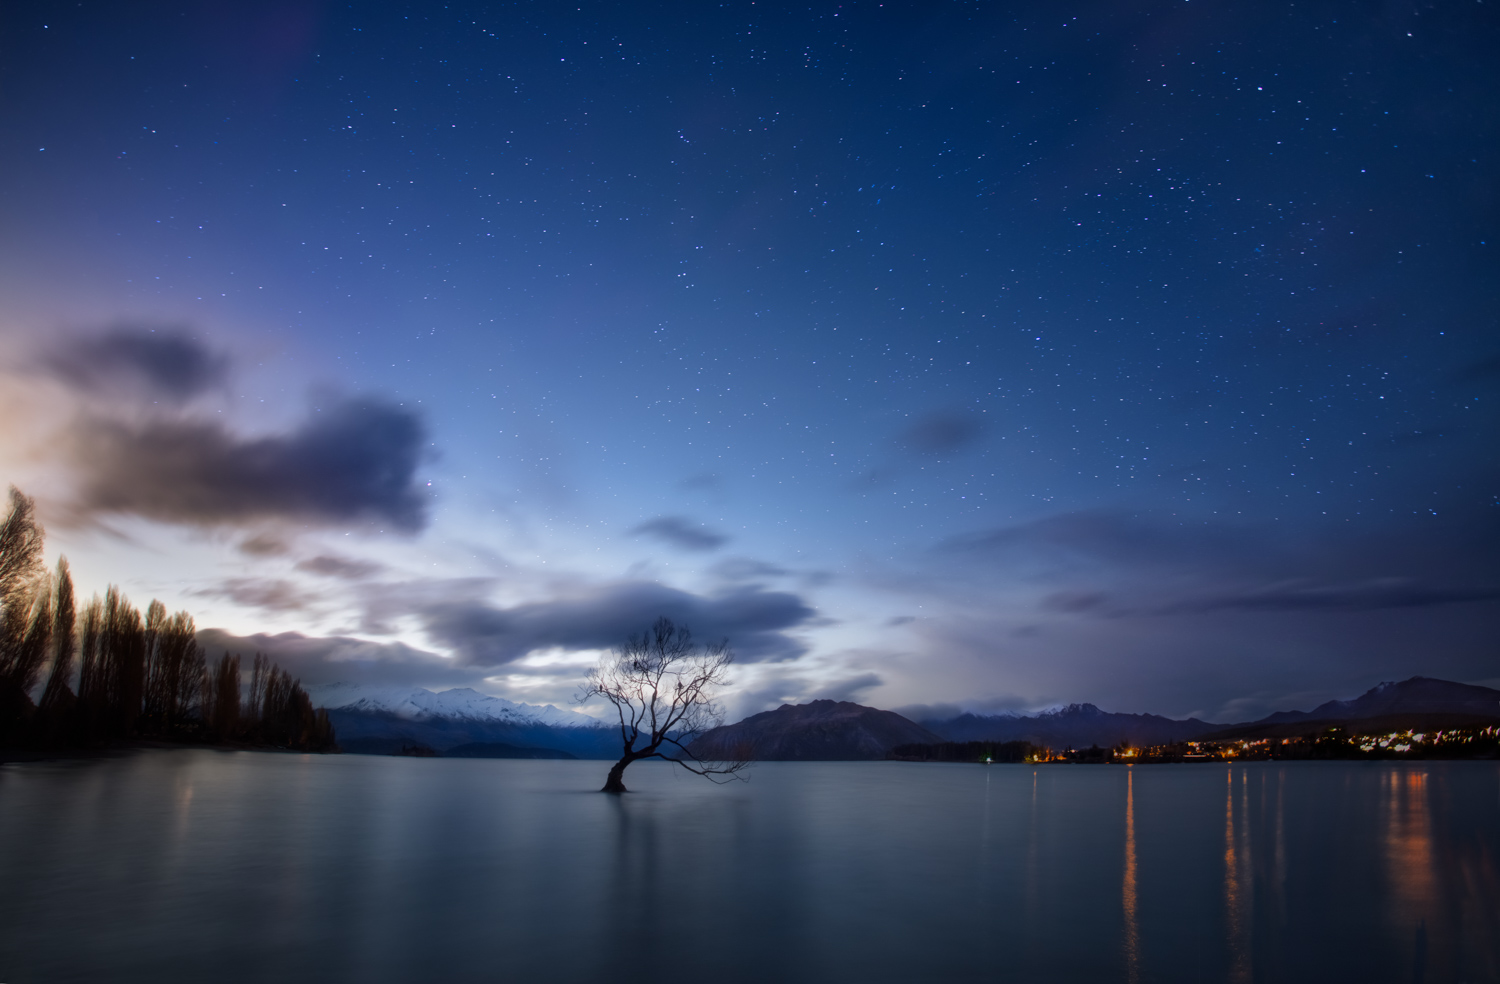 Night Sky Photography , New Zealand 6 day tour - The Wanaka Tree by George Triantafillou